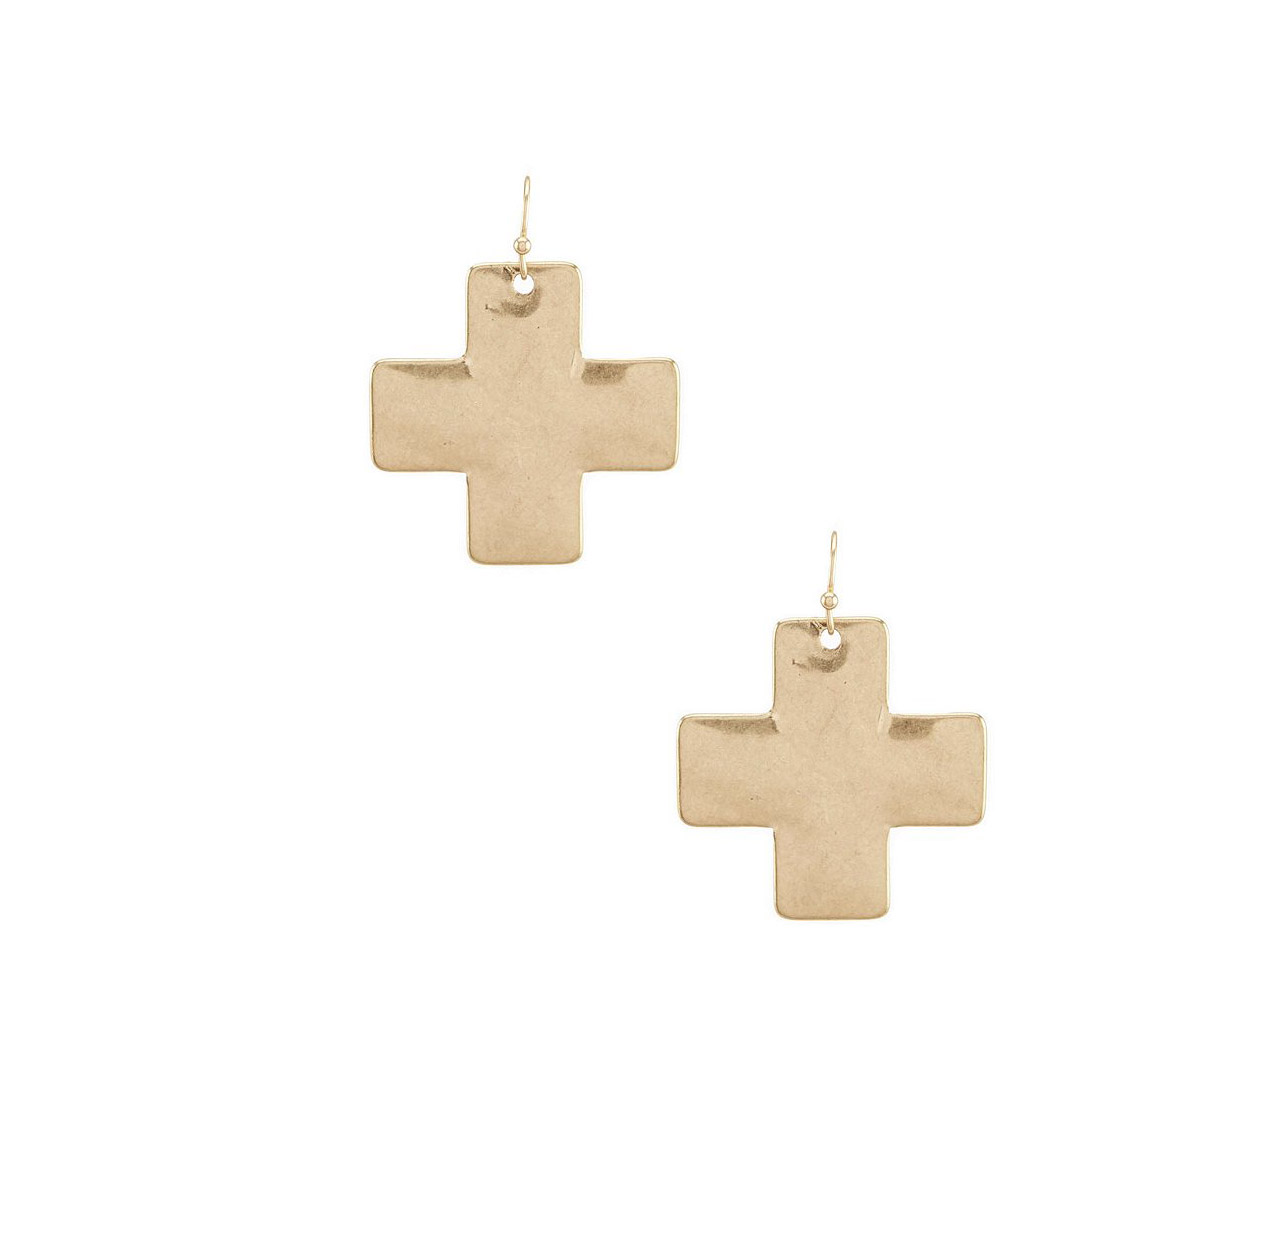 Karen Cross Earrings